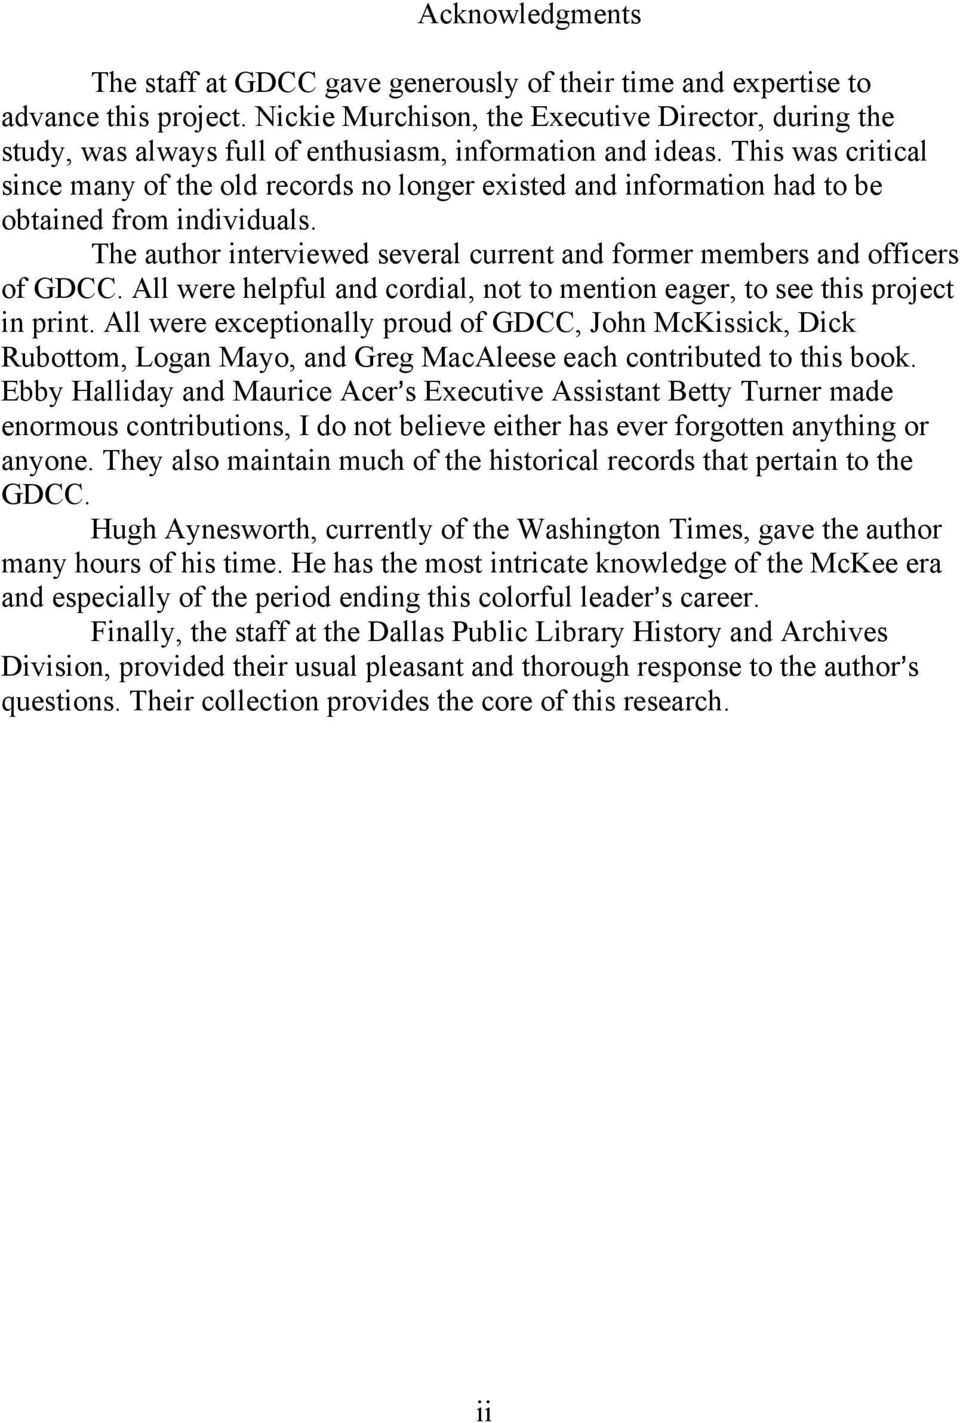 This was critical since many of the old records no longer existed and information had to be obtained from individuals. The author interviewed several current and former members and officers of GDCC.